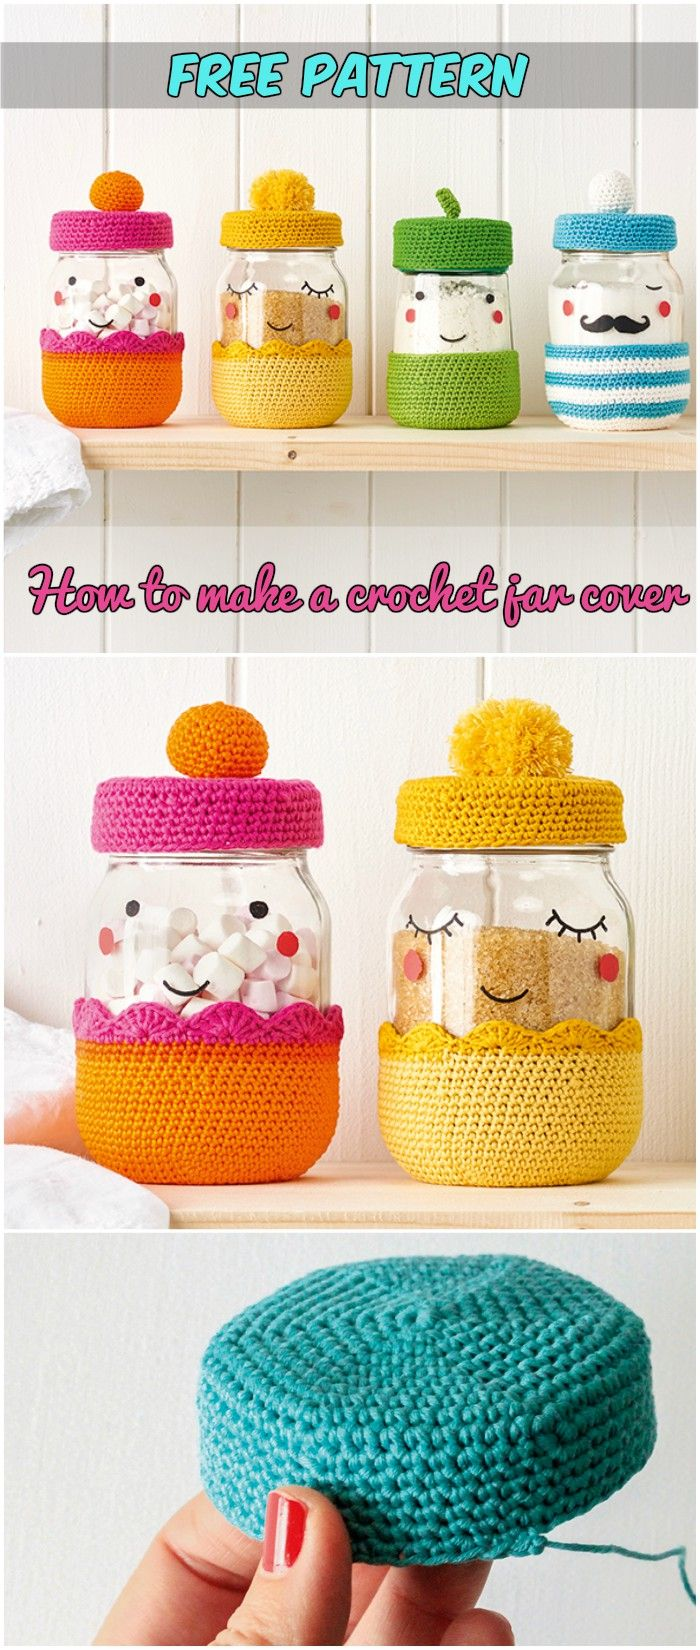 How to make a crochet jar cover Free Pattern